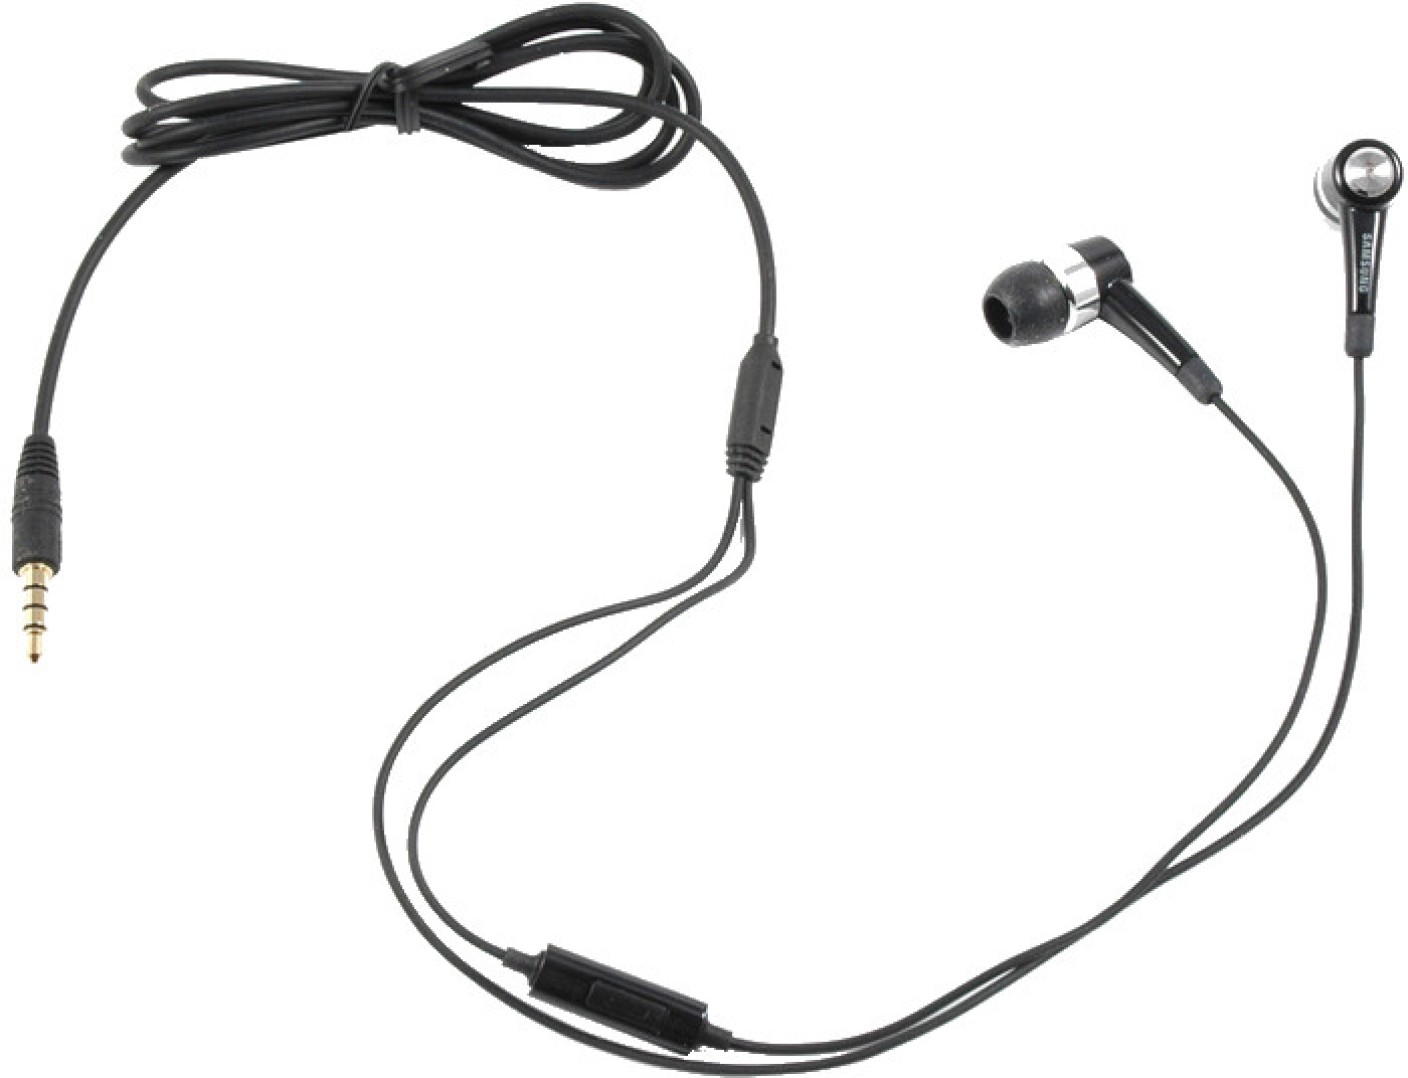 Samsung EHS48ES0MECINU Headset with Mic Price in India